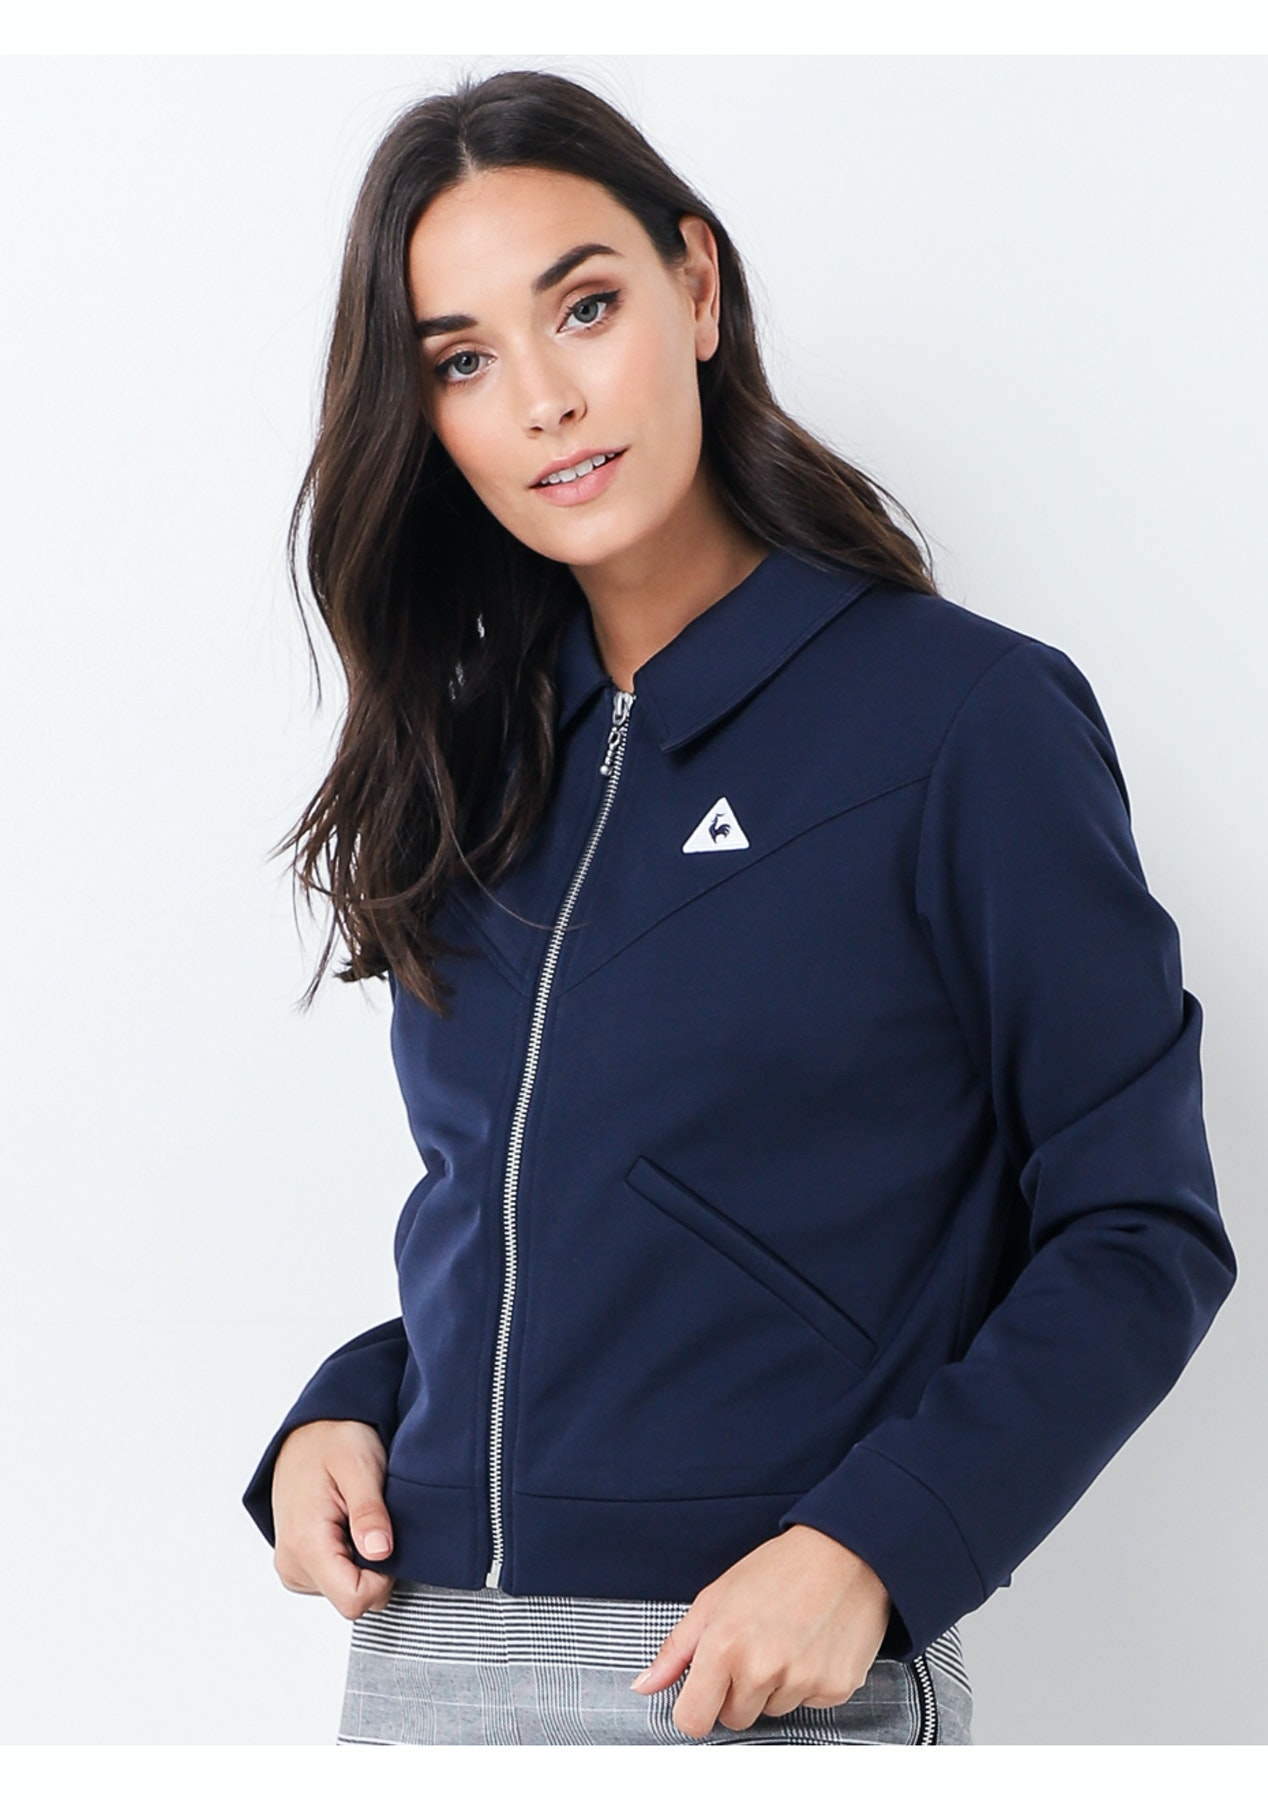 572ce2780a Le Coq Sportif - Womens Rachelle Jacket - Dress Blues - Le Coq Sportif -  Onceit